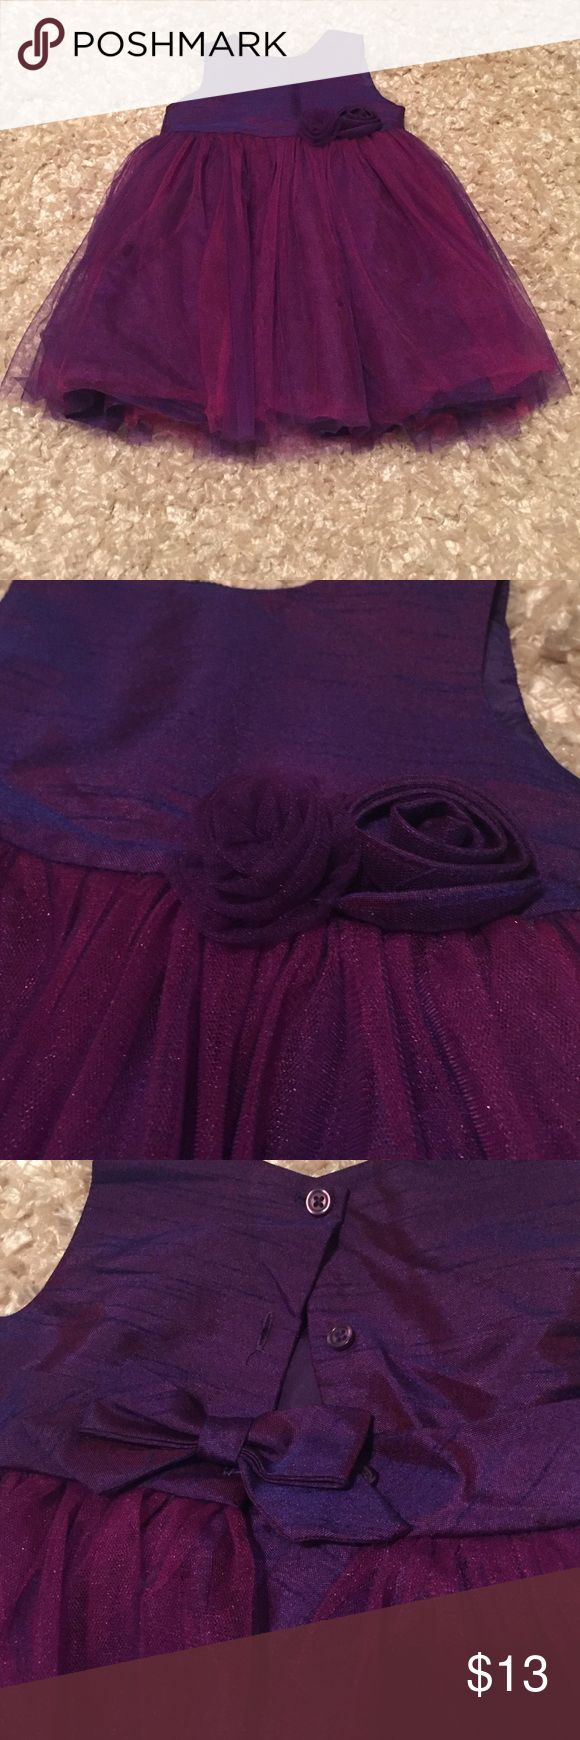 18m dress Cherokee brand 18m purple dress.  The purple is color changing with pink/purple tulle.  EUC. Cherokee Dresses Formal